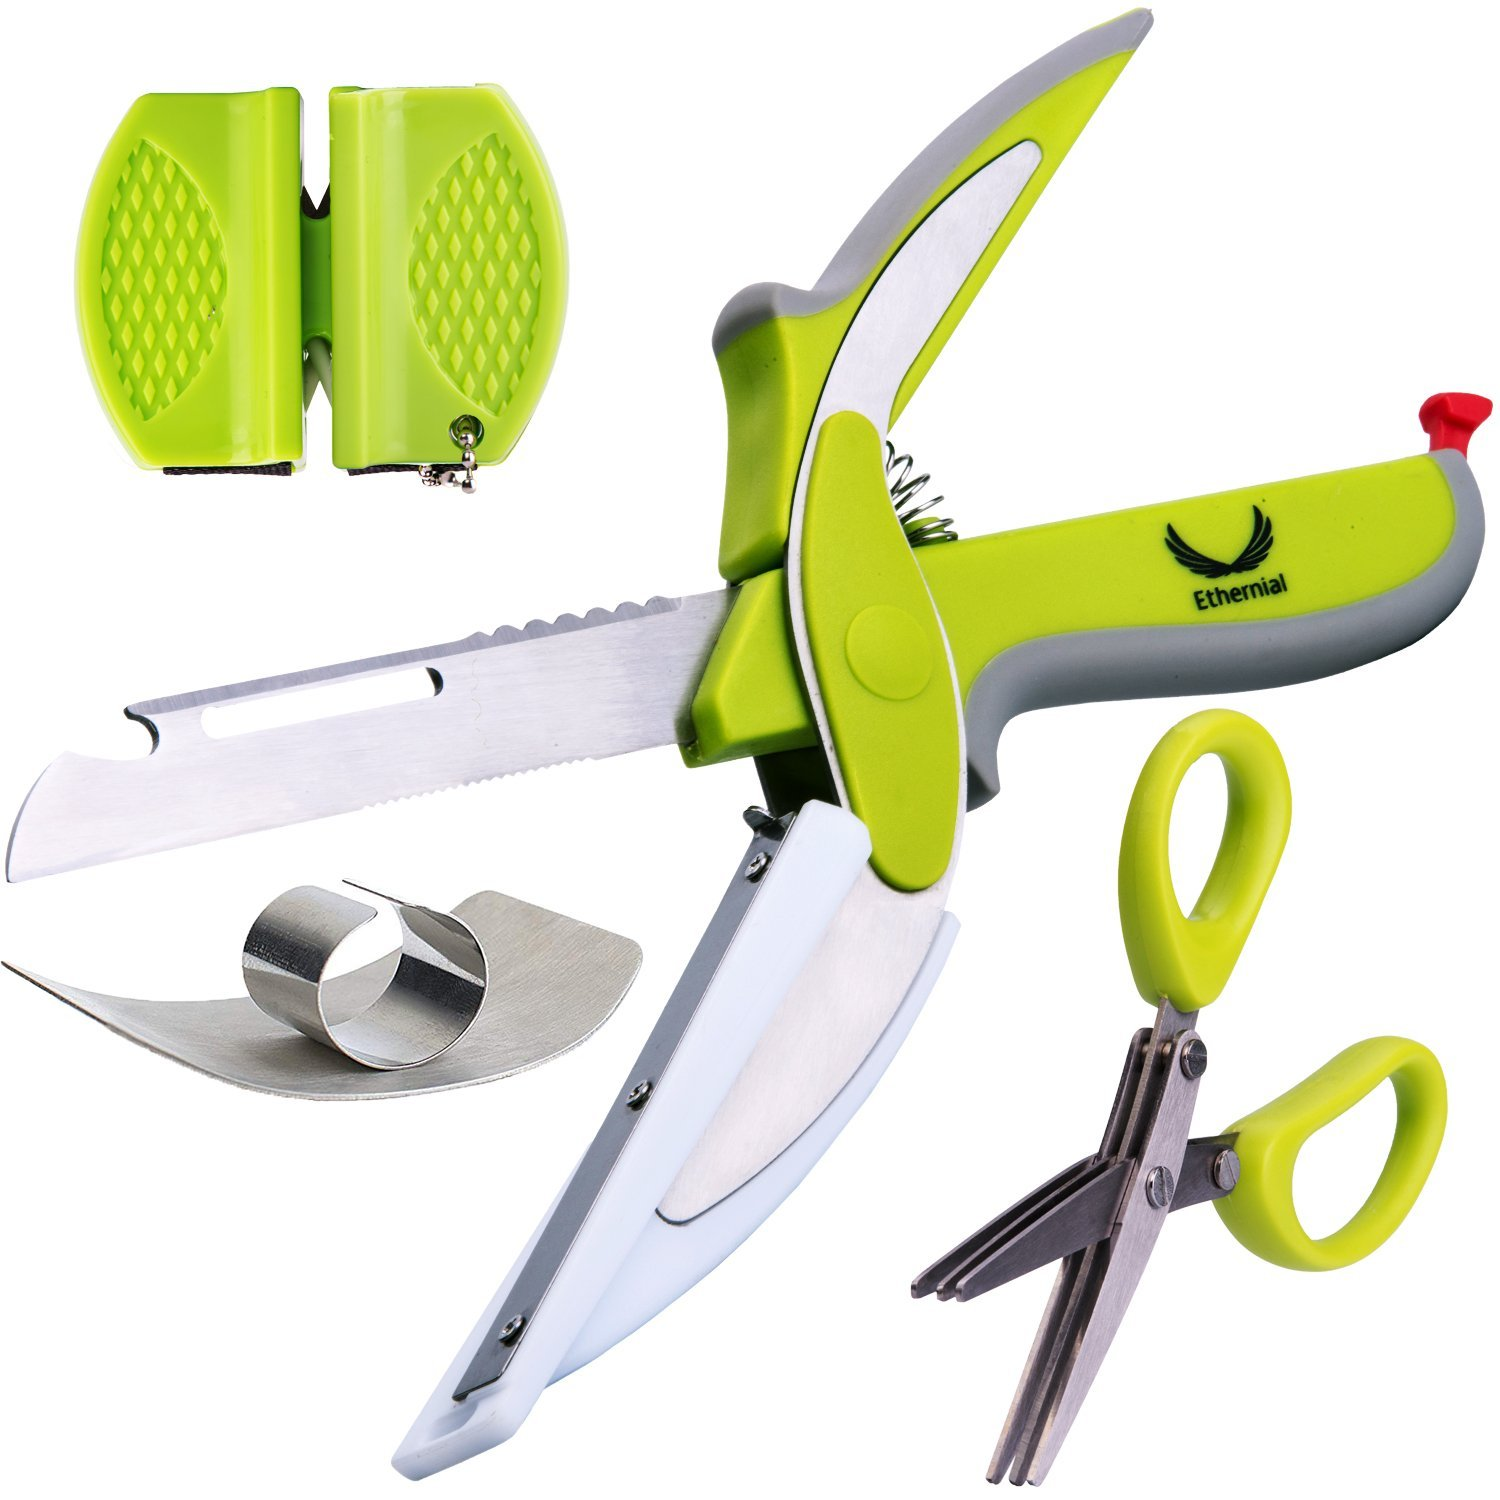 Multipurpose Clever Food and Salad Cutter | Smart 6-in-1 Chopper Knife with Cutting Board + Finger Protector + Knife Sharpener + Herb Scissors | Perfect for BBQ Party